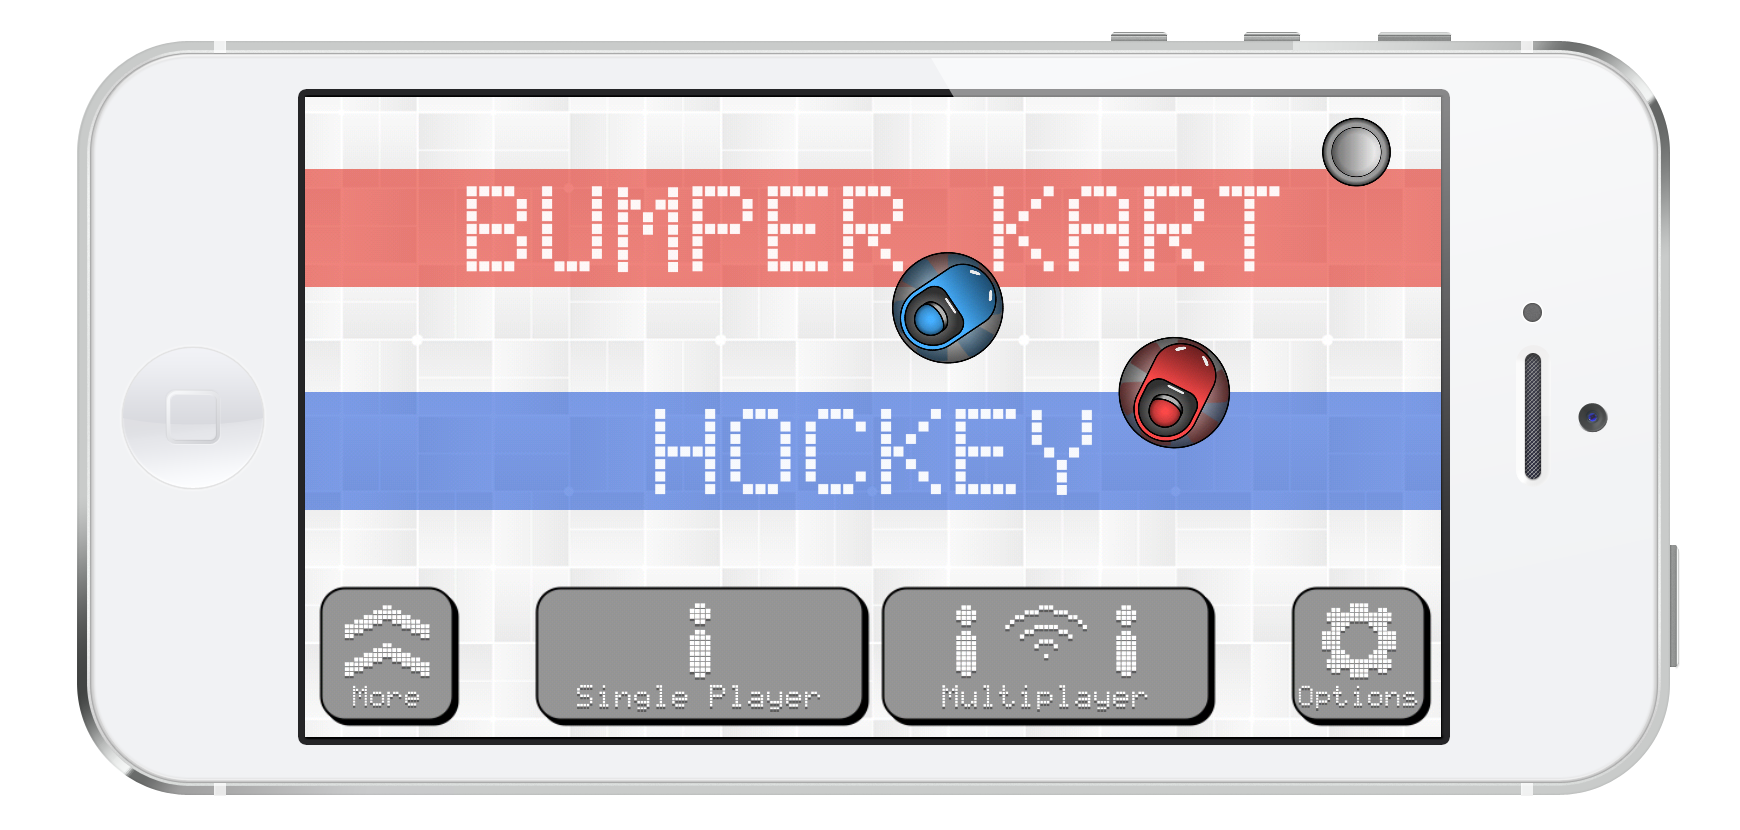 Bumper Kart Hockey Menu